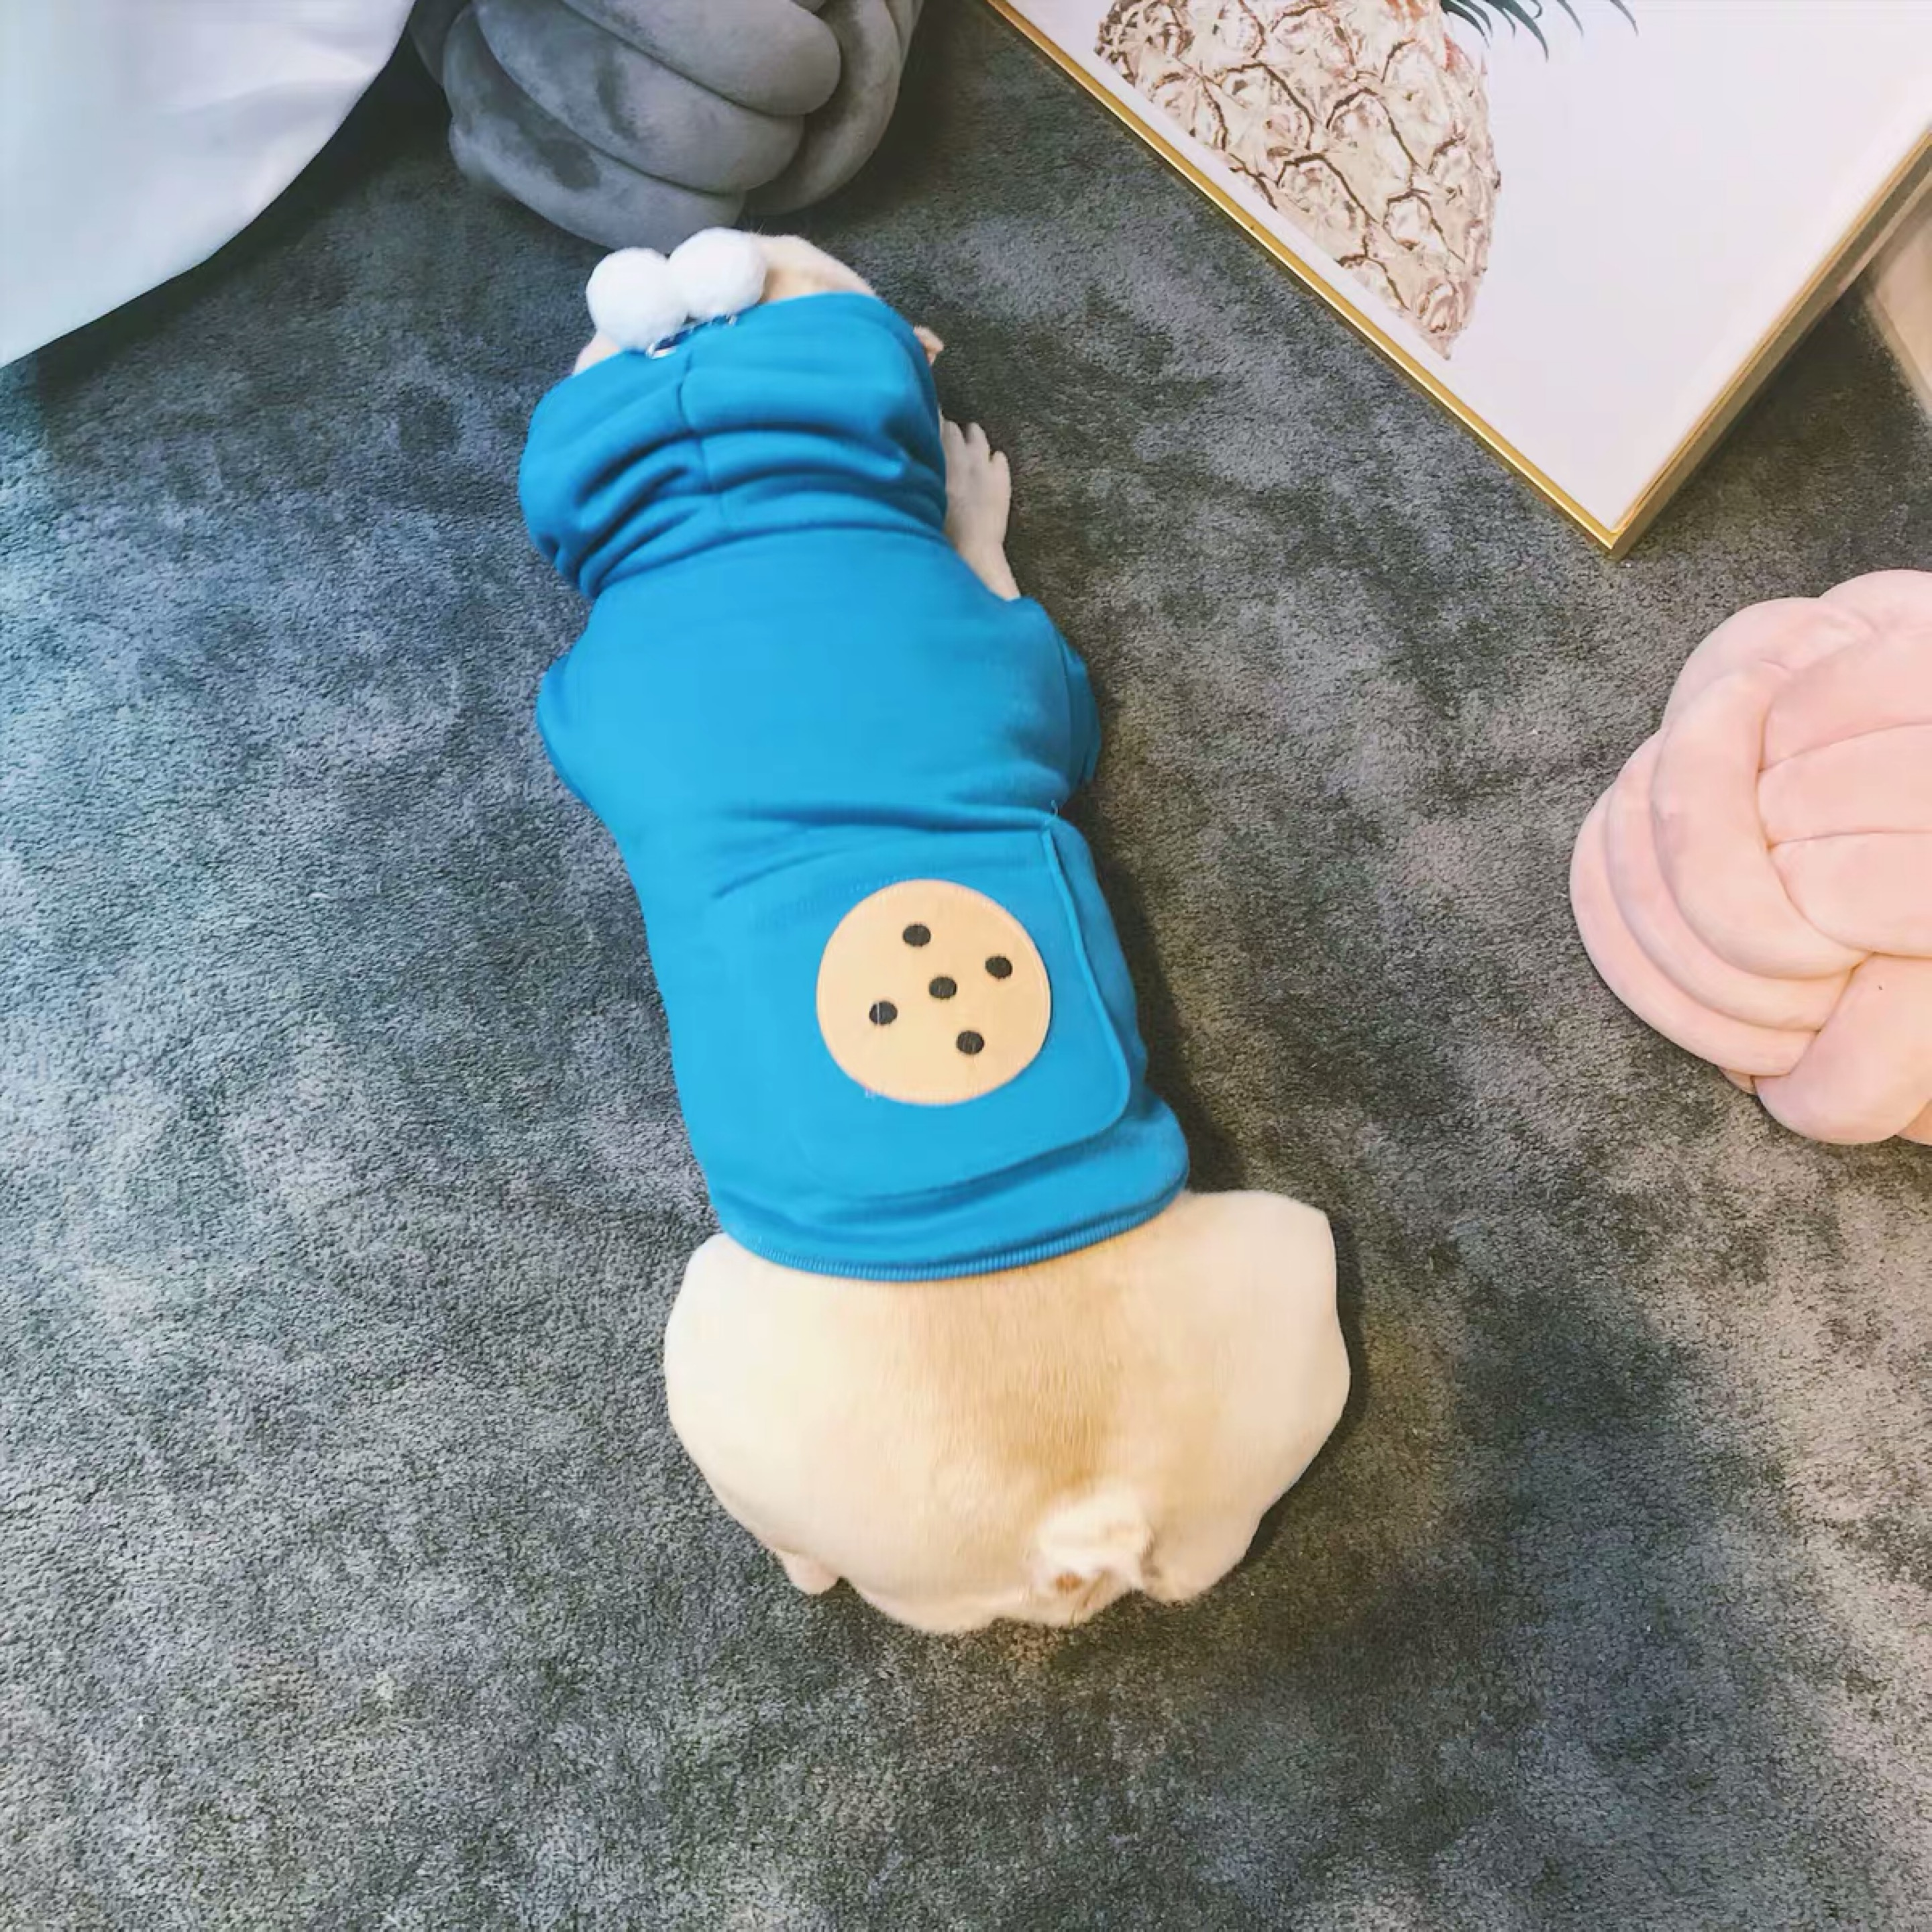 Fashion Dog Hoodie Pet Puppy Clothes Coat Bulldog Schnauzer Chihuahua Jacket for Dogs Cats Warm Apparel Pug Costume LDC04 in Dog Hoodies from Home Garden